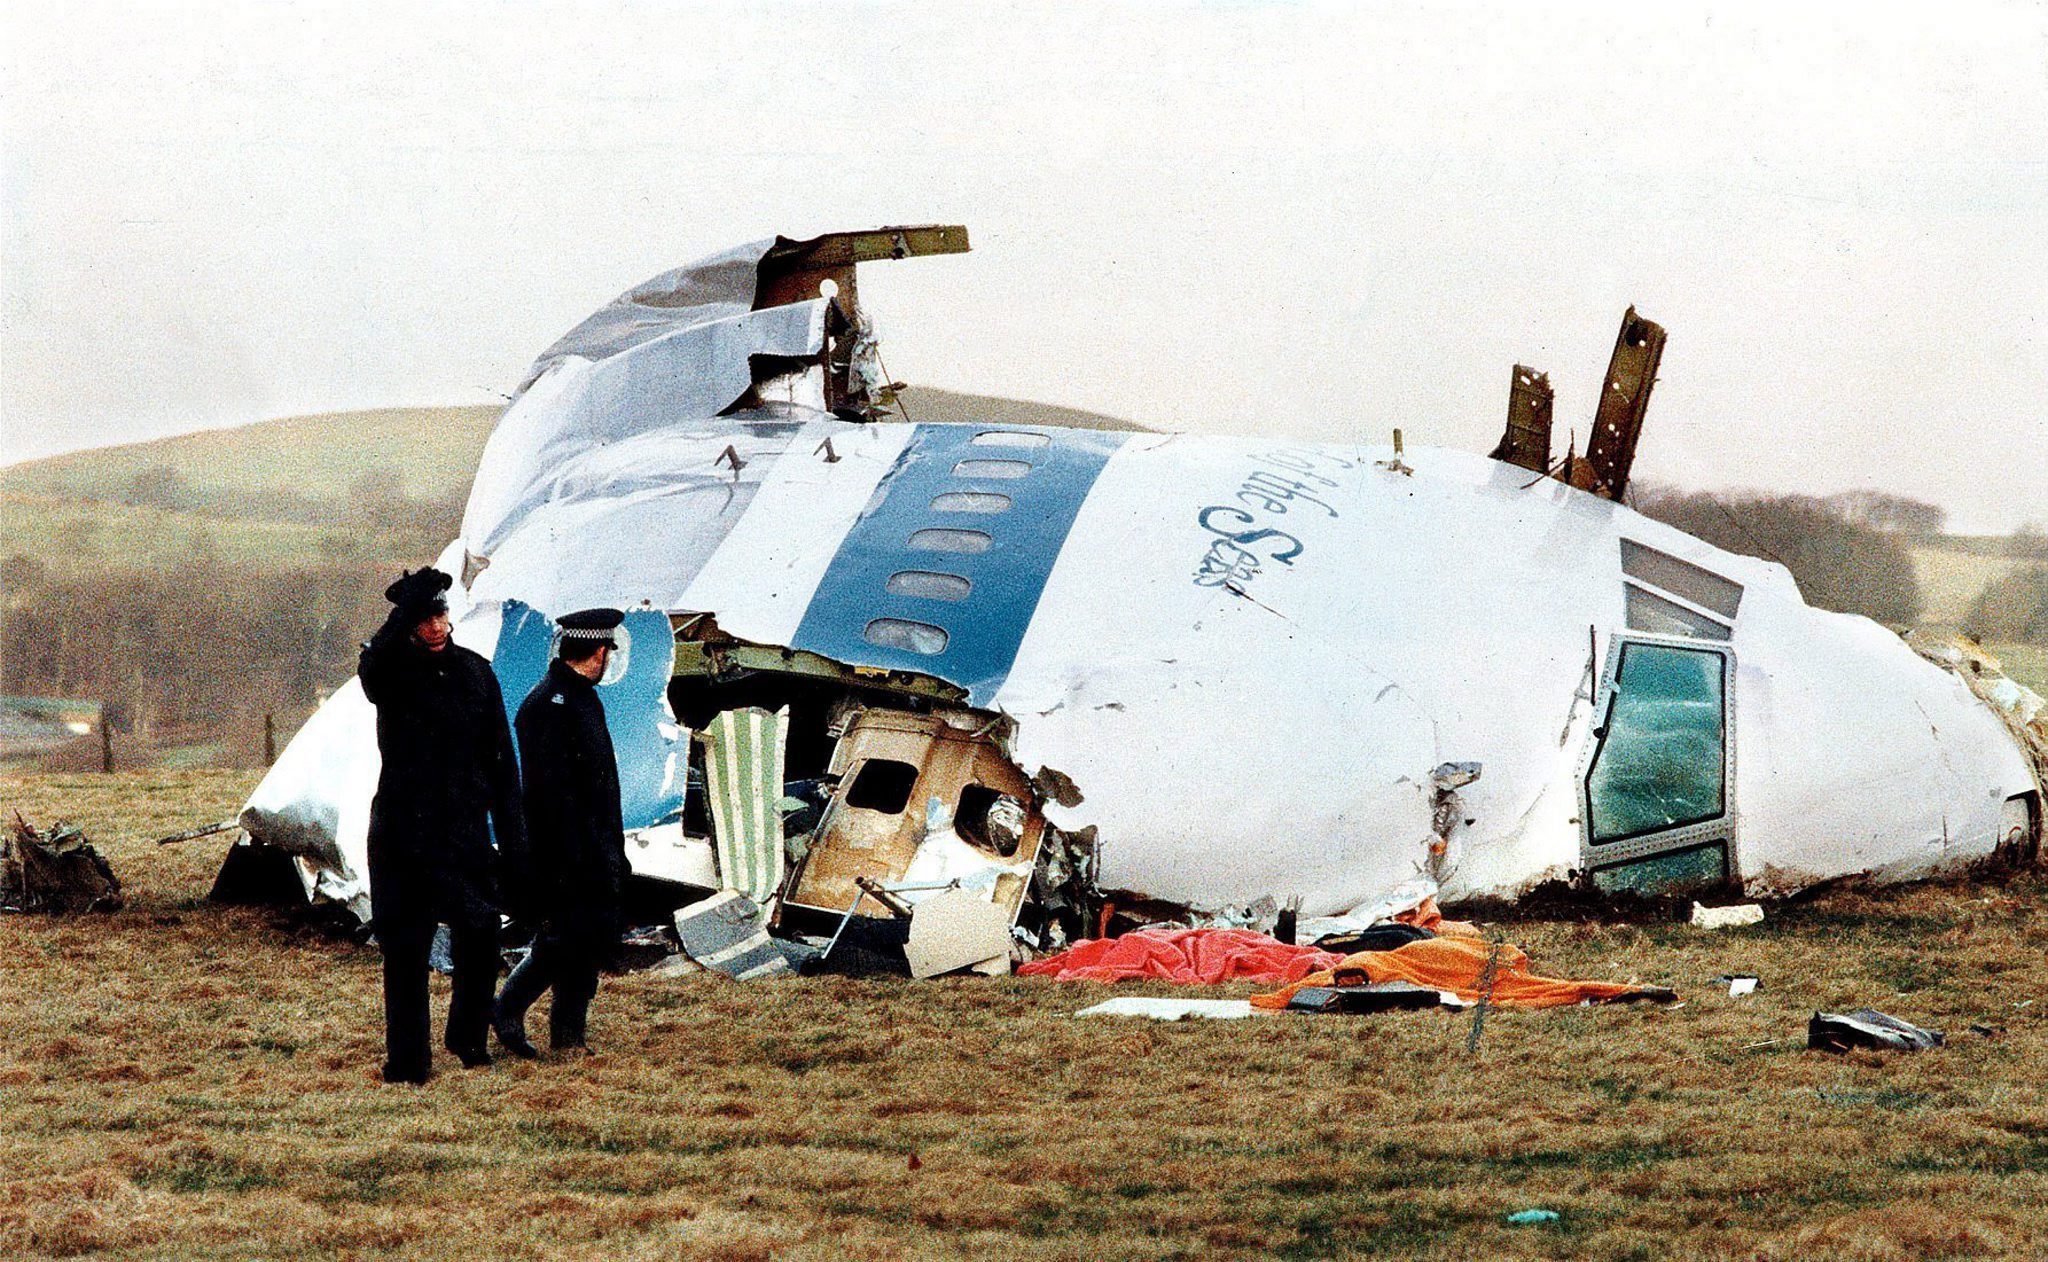 This Christmas will be the 28th anniversary of the bombing of Pan Am Flight 103 over Lockerbie